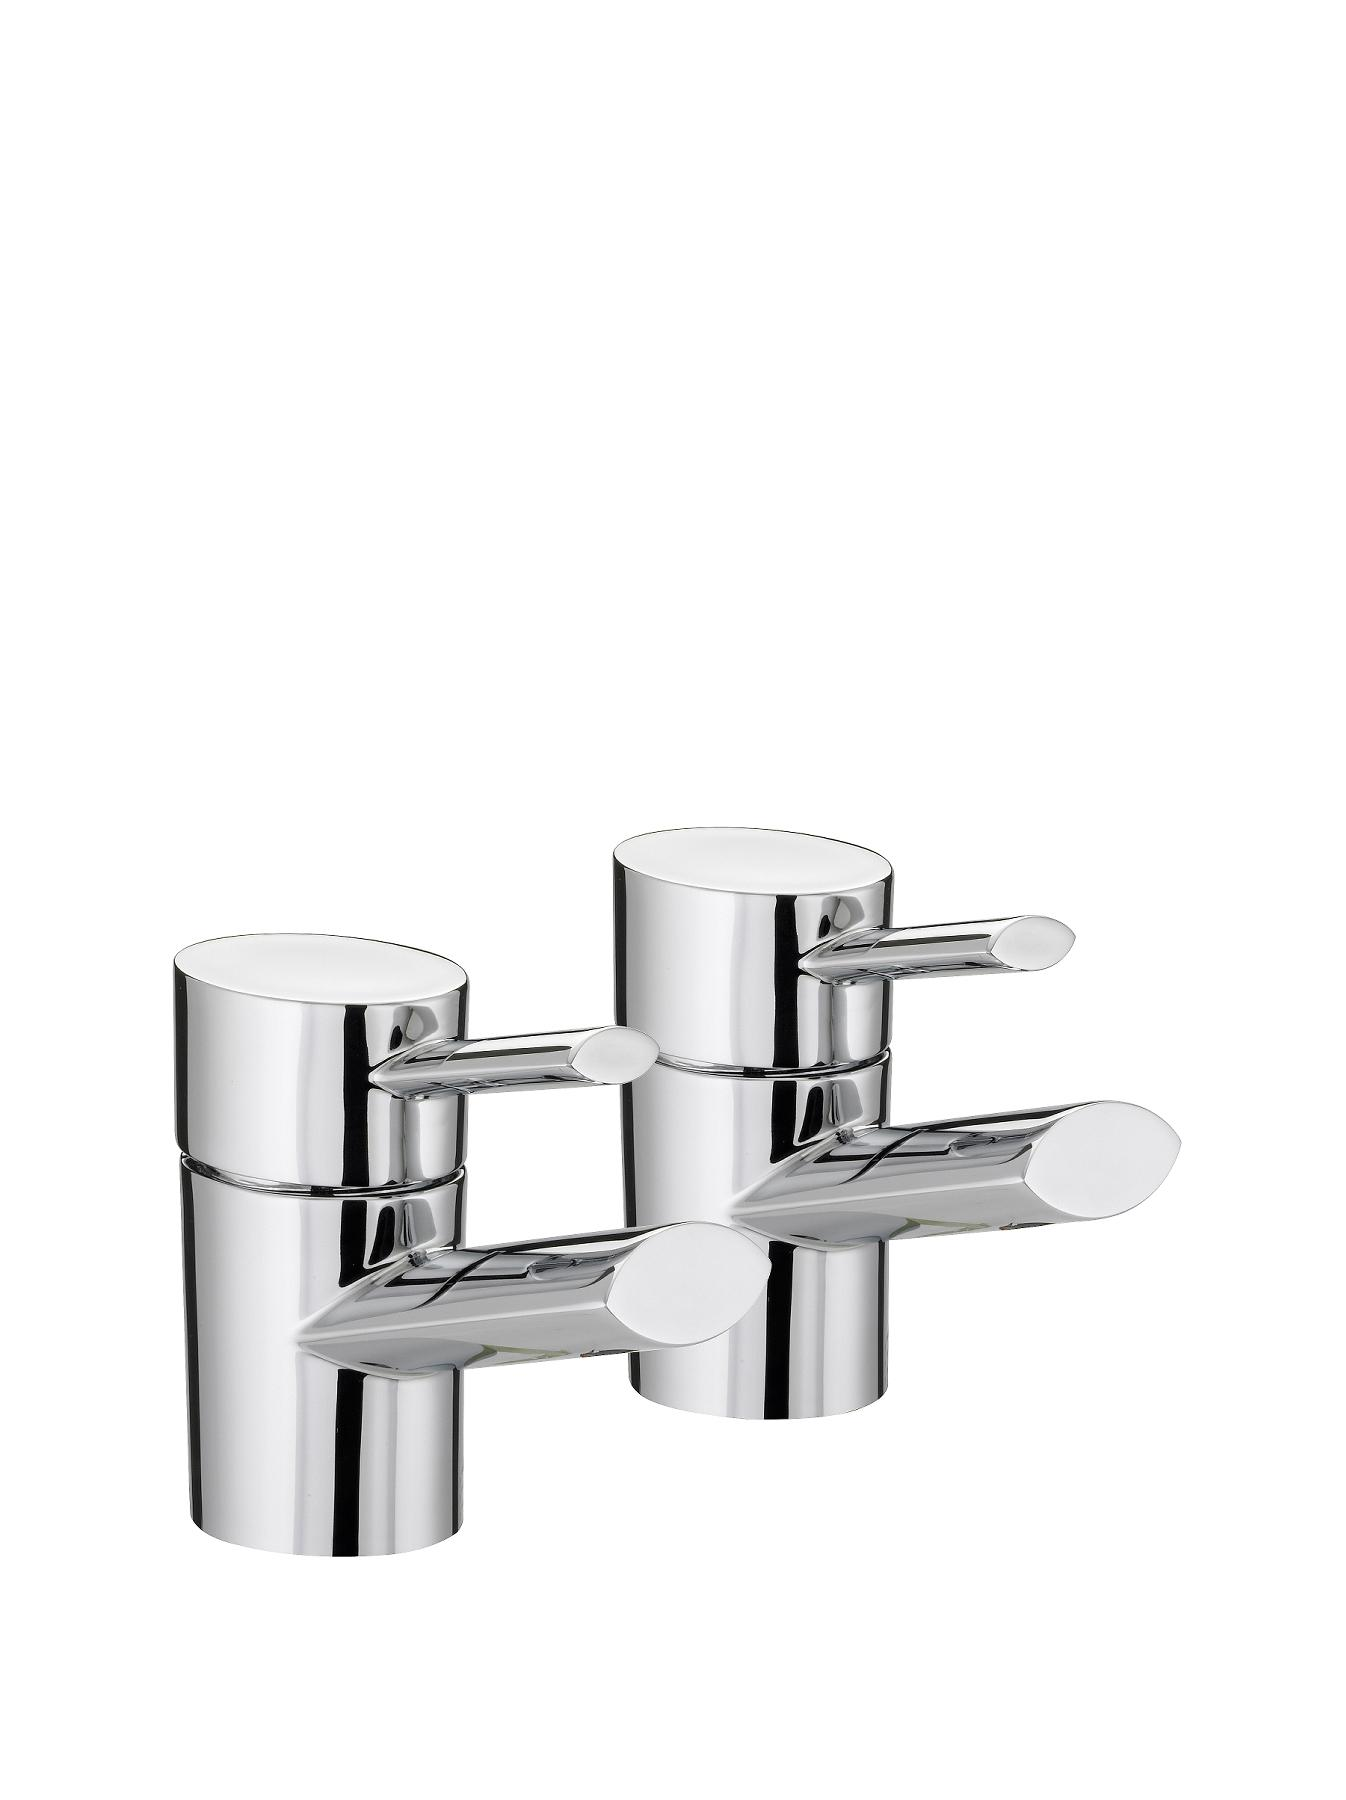 Bristan Oval Bath Taps - Chrome